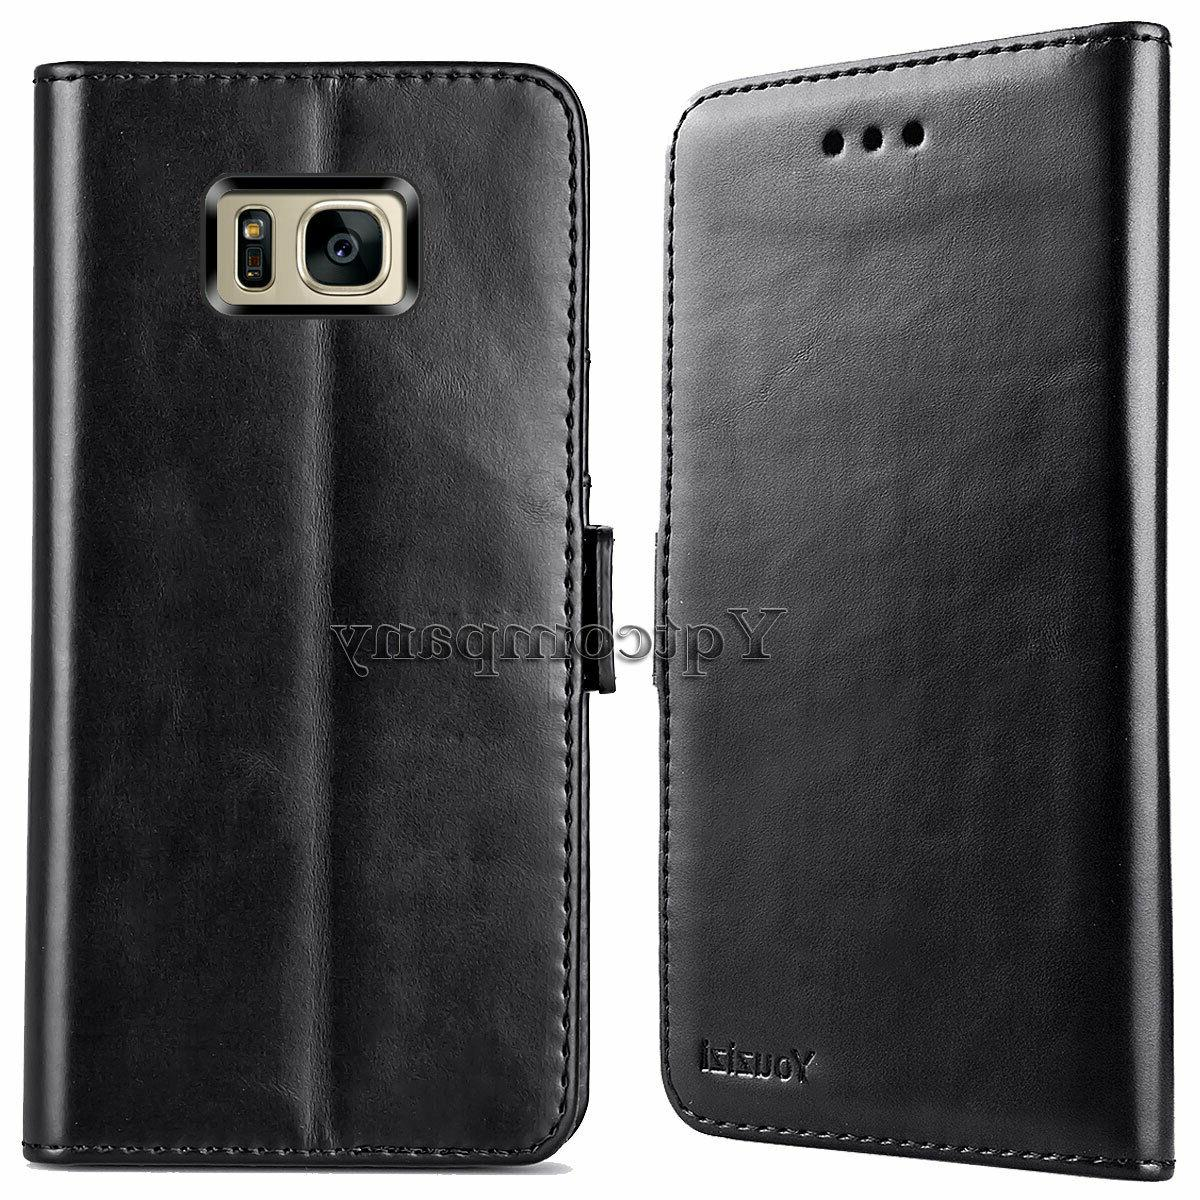 For S7 Card Wallet Flip Cover Pouch